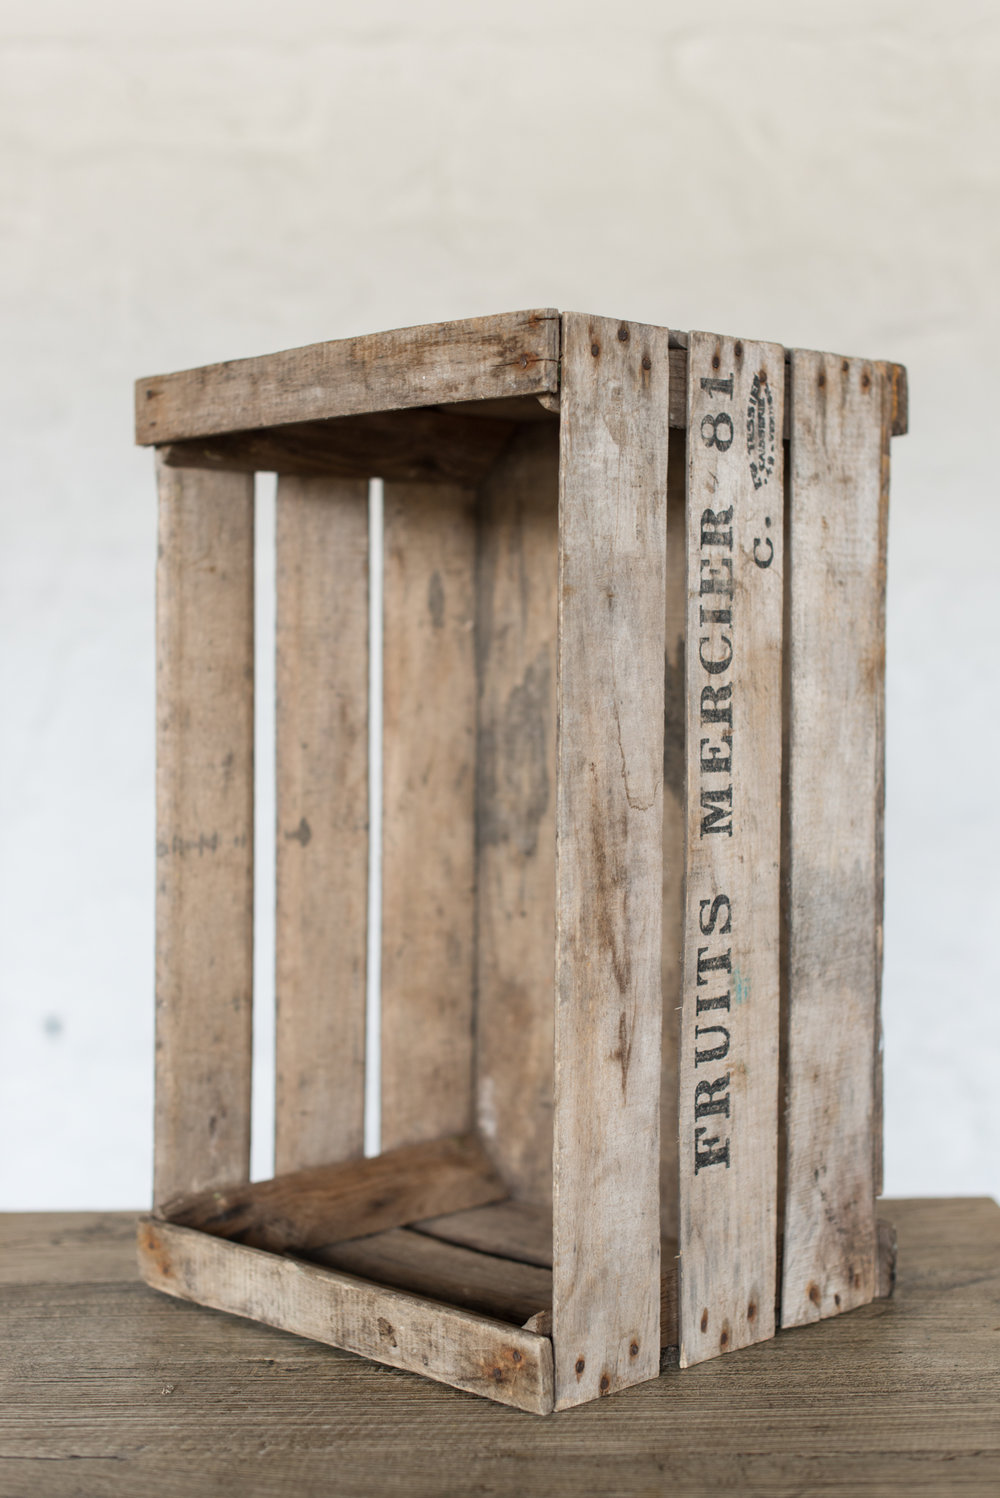 French Fruit Crates